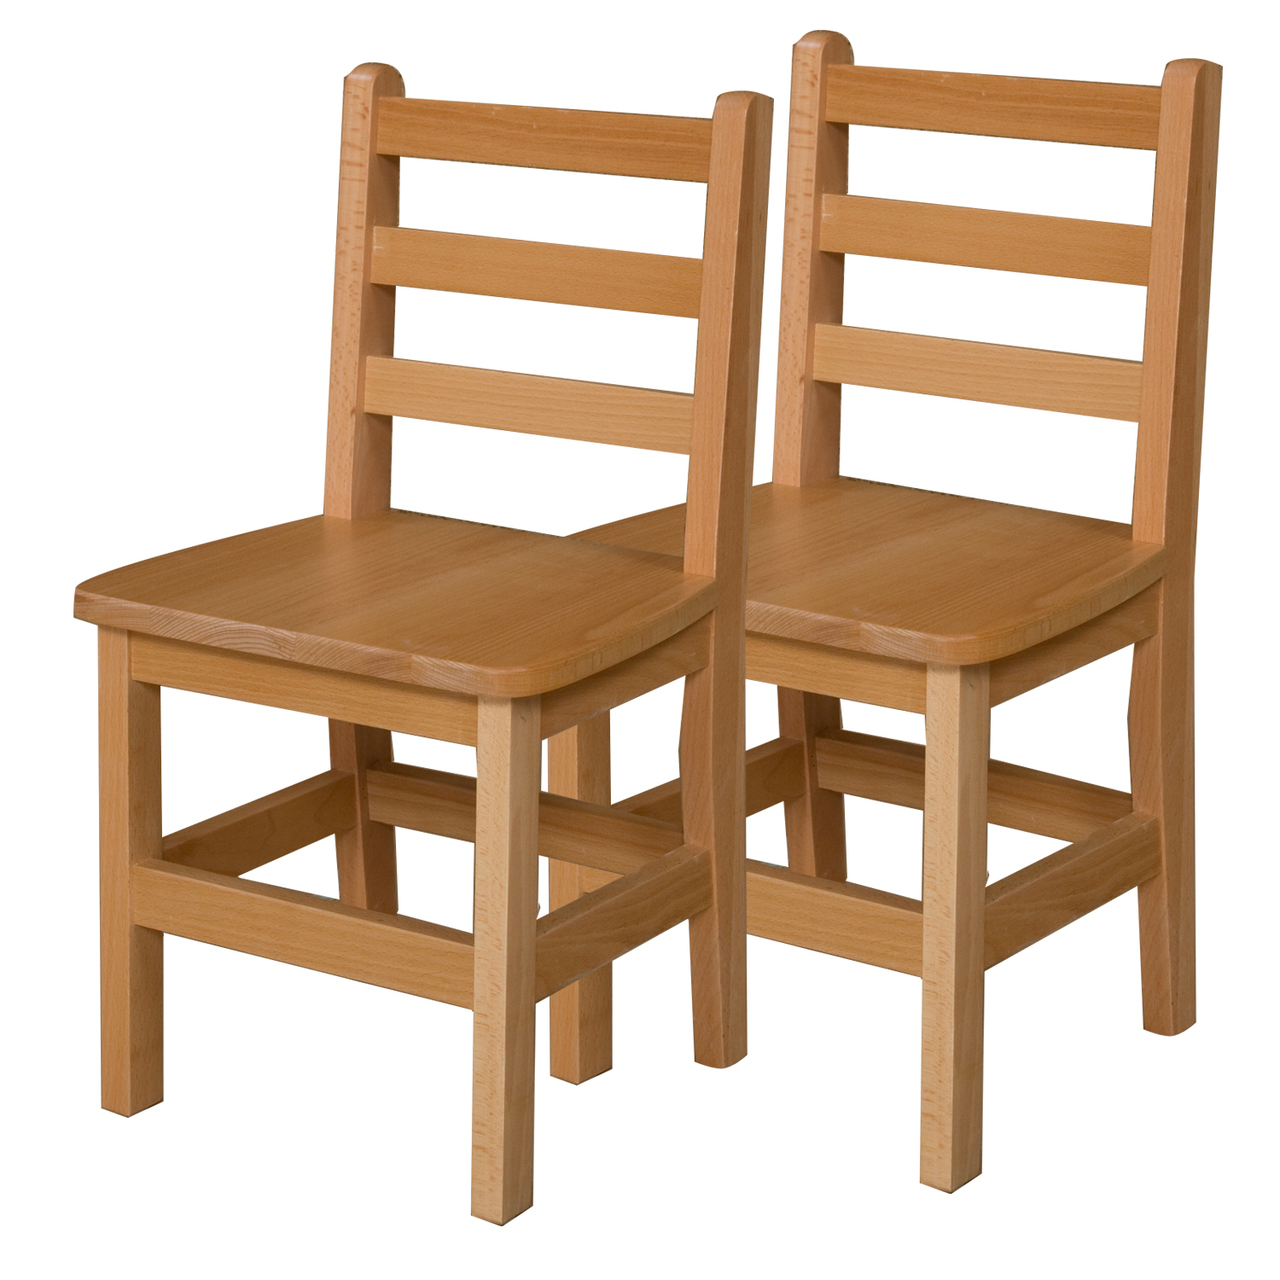 Wooden Classroom Preschool Daycare Chairs